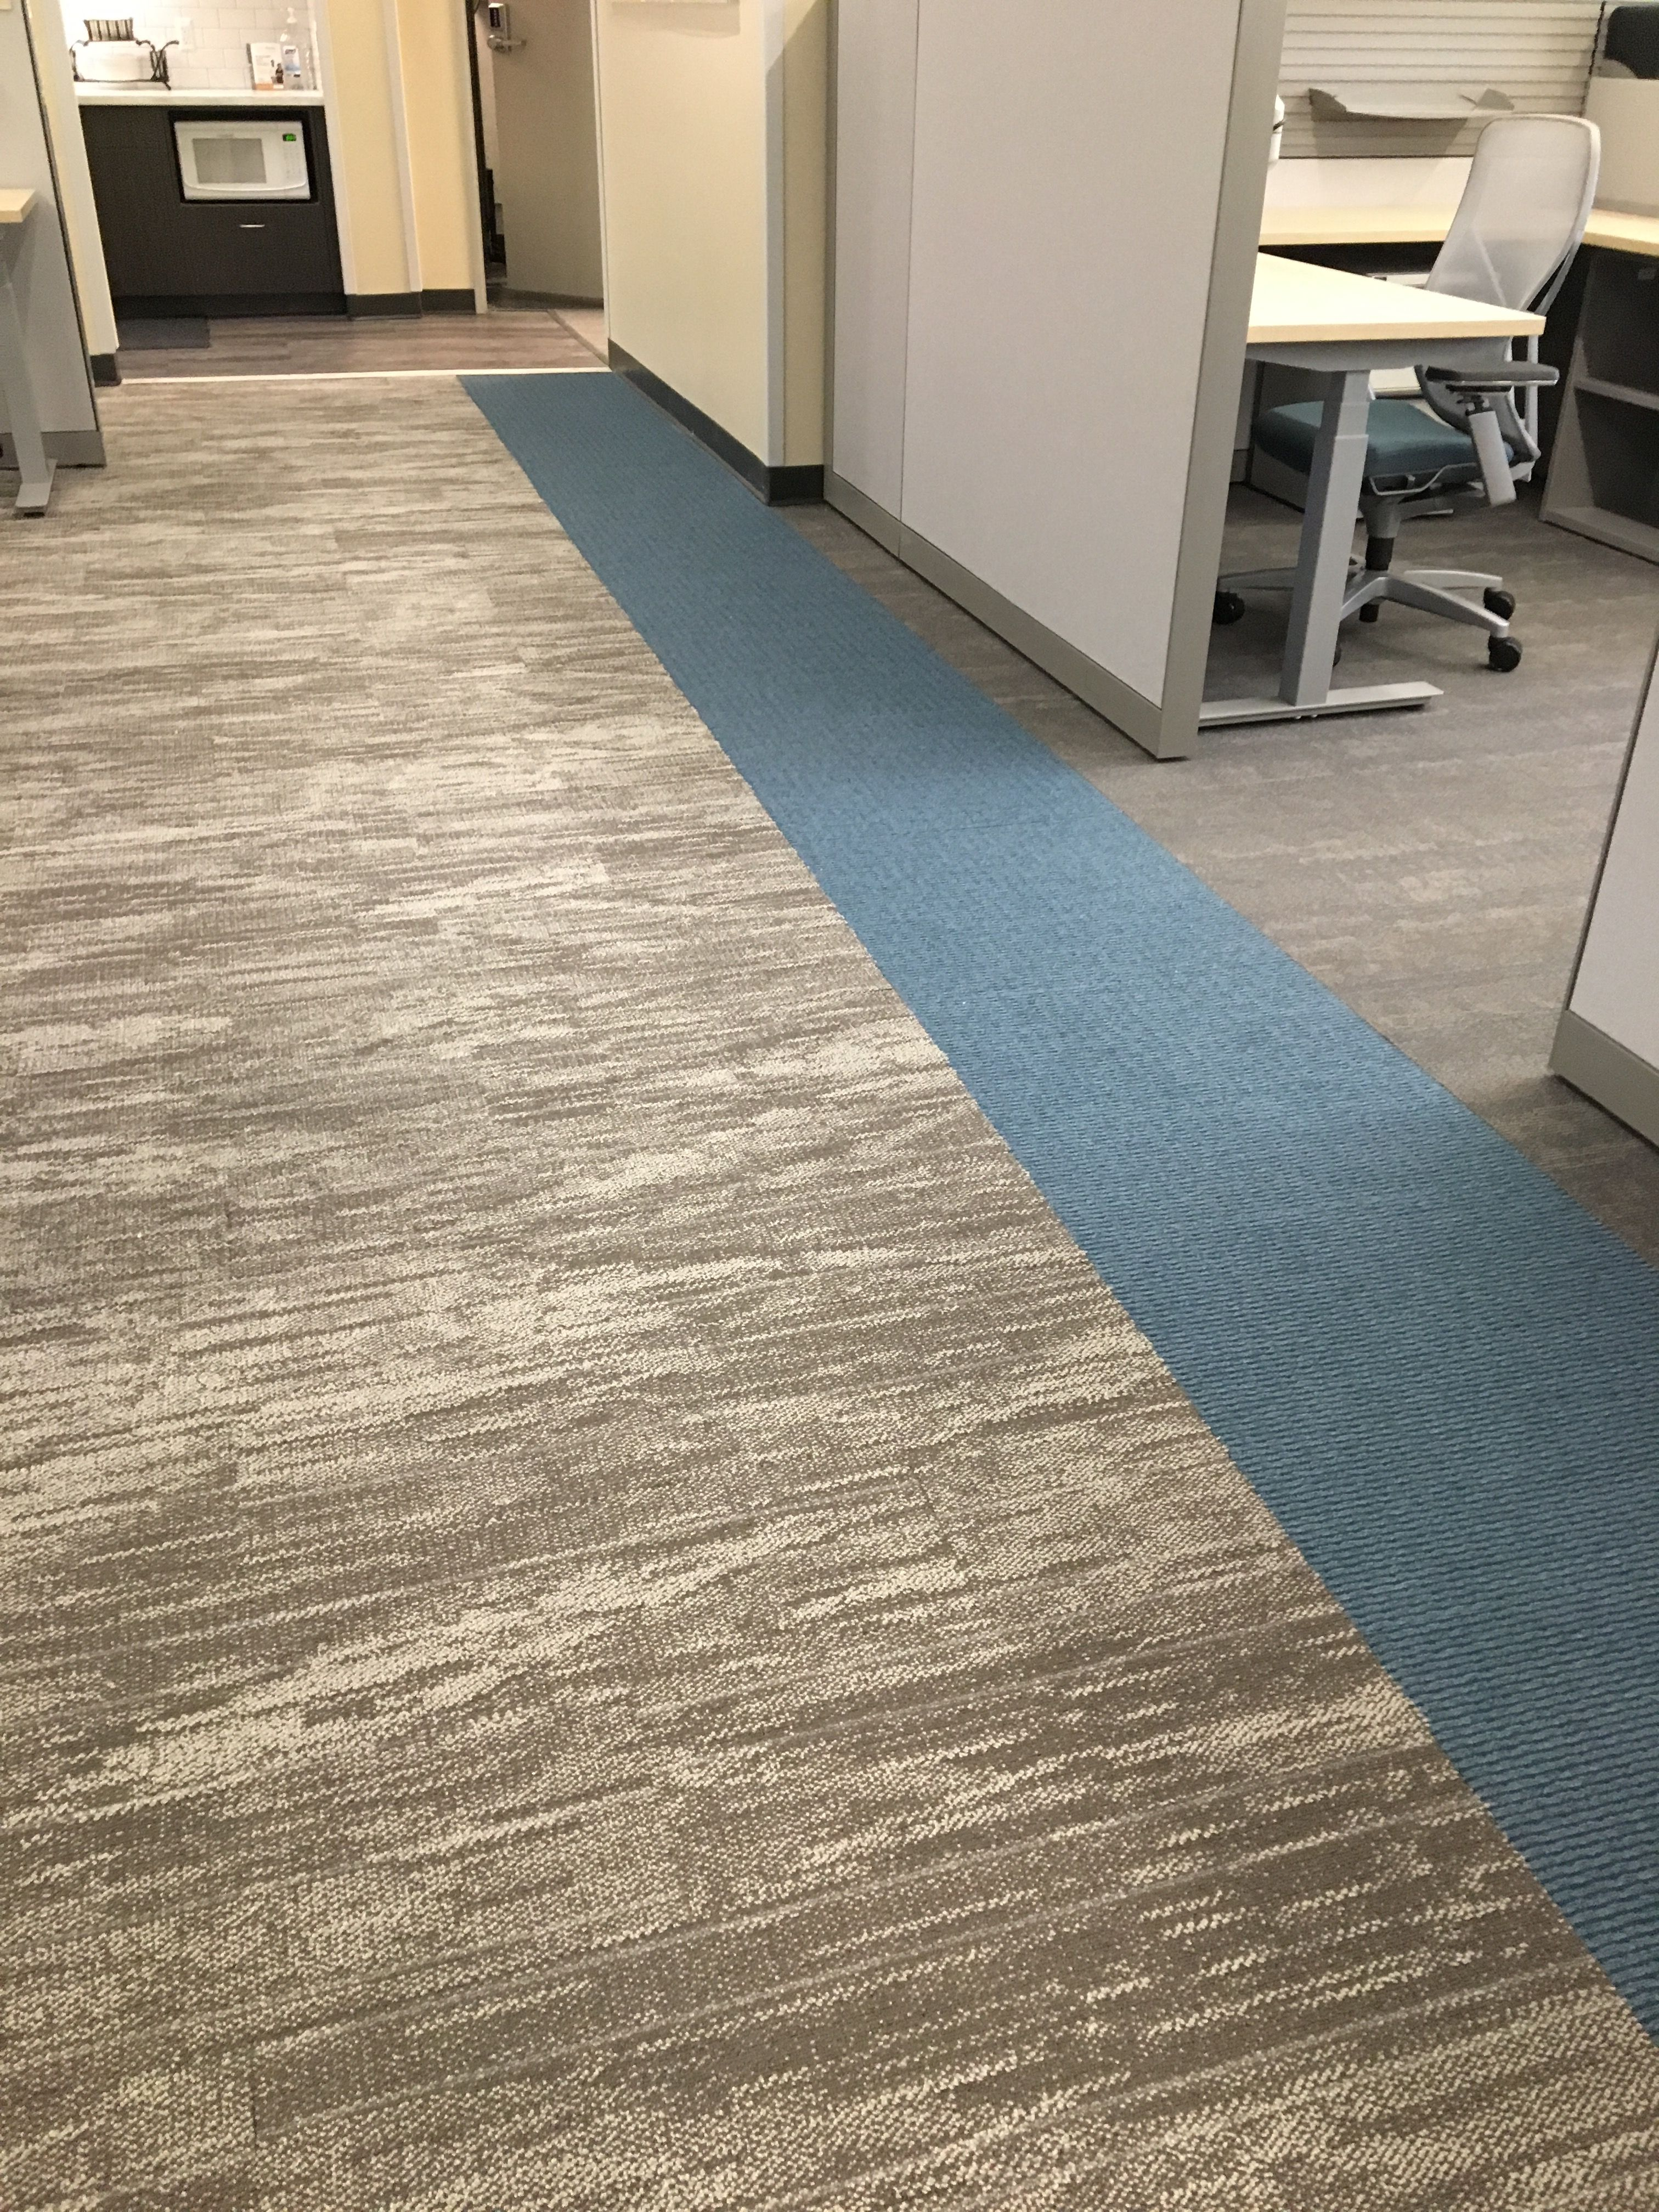 Veil Carpet Tile 12 X 48 With The Brights Blue By Ef Contract Flooring Carpet Tiles Carpet Plank